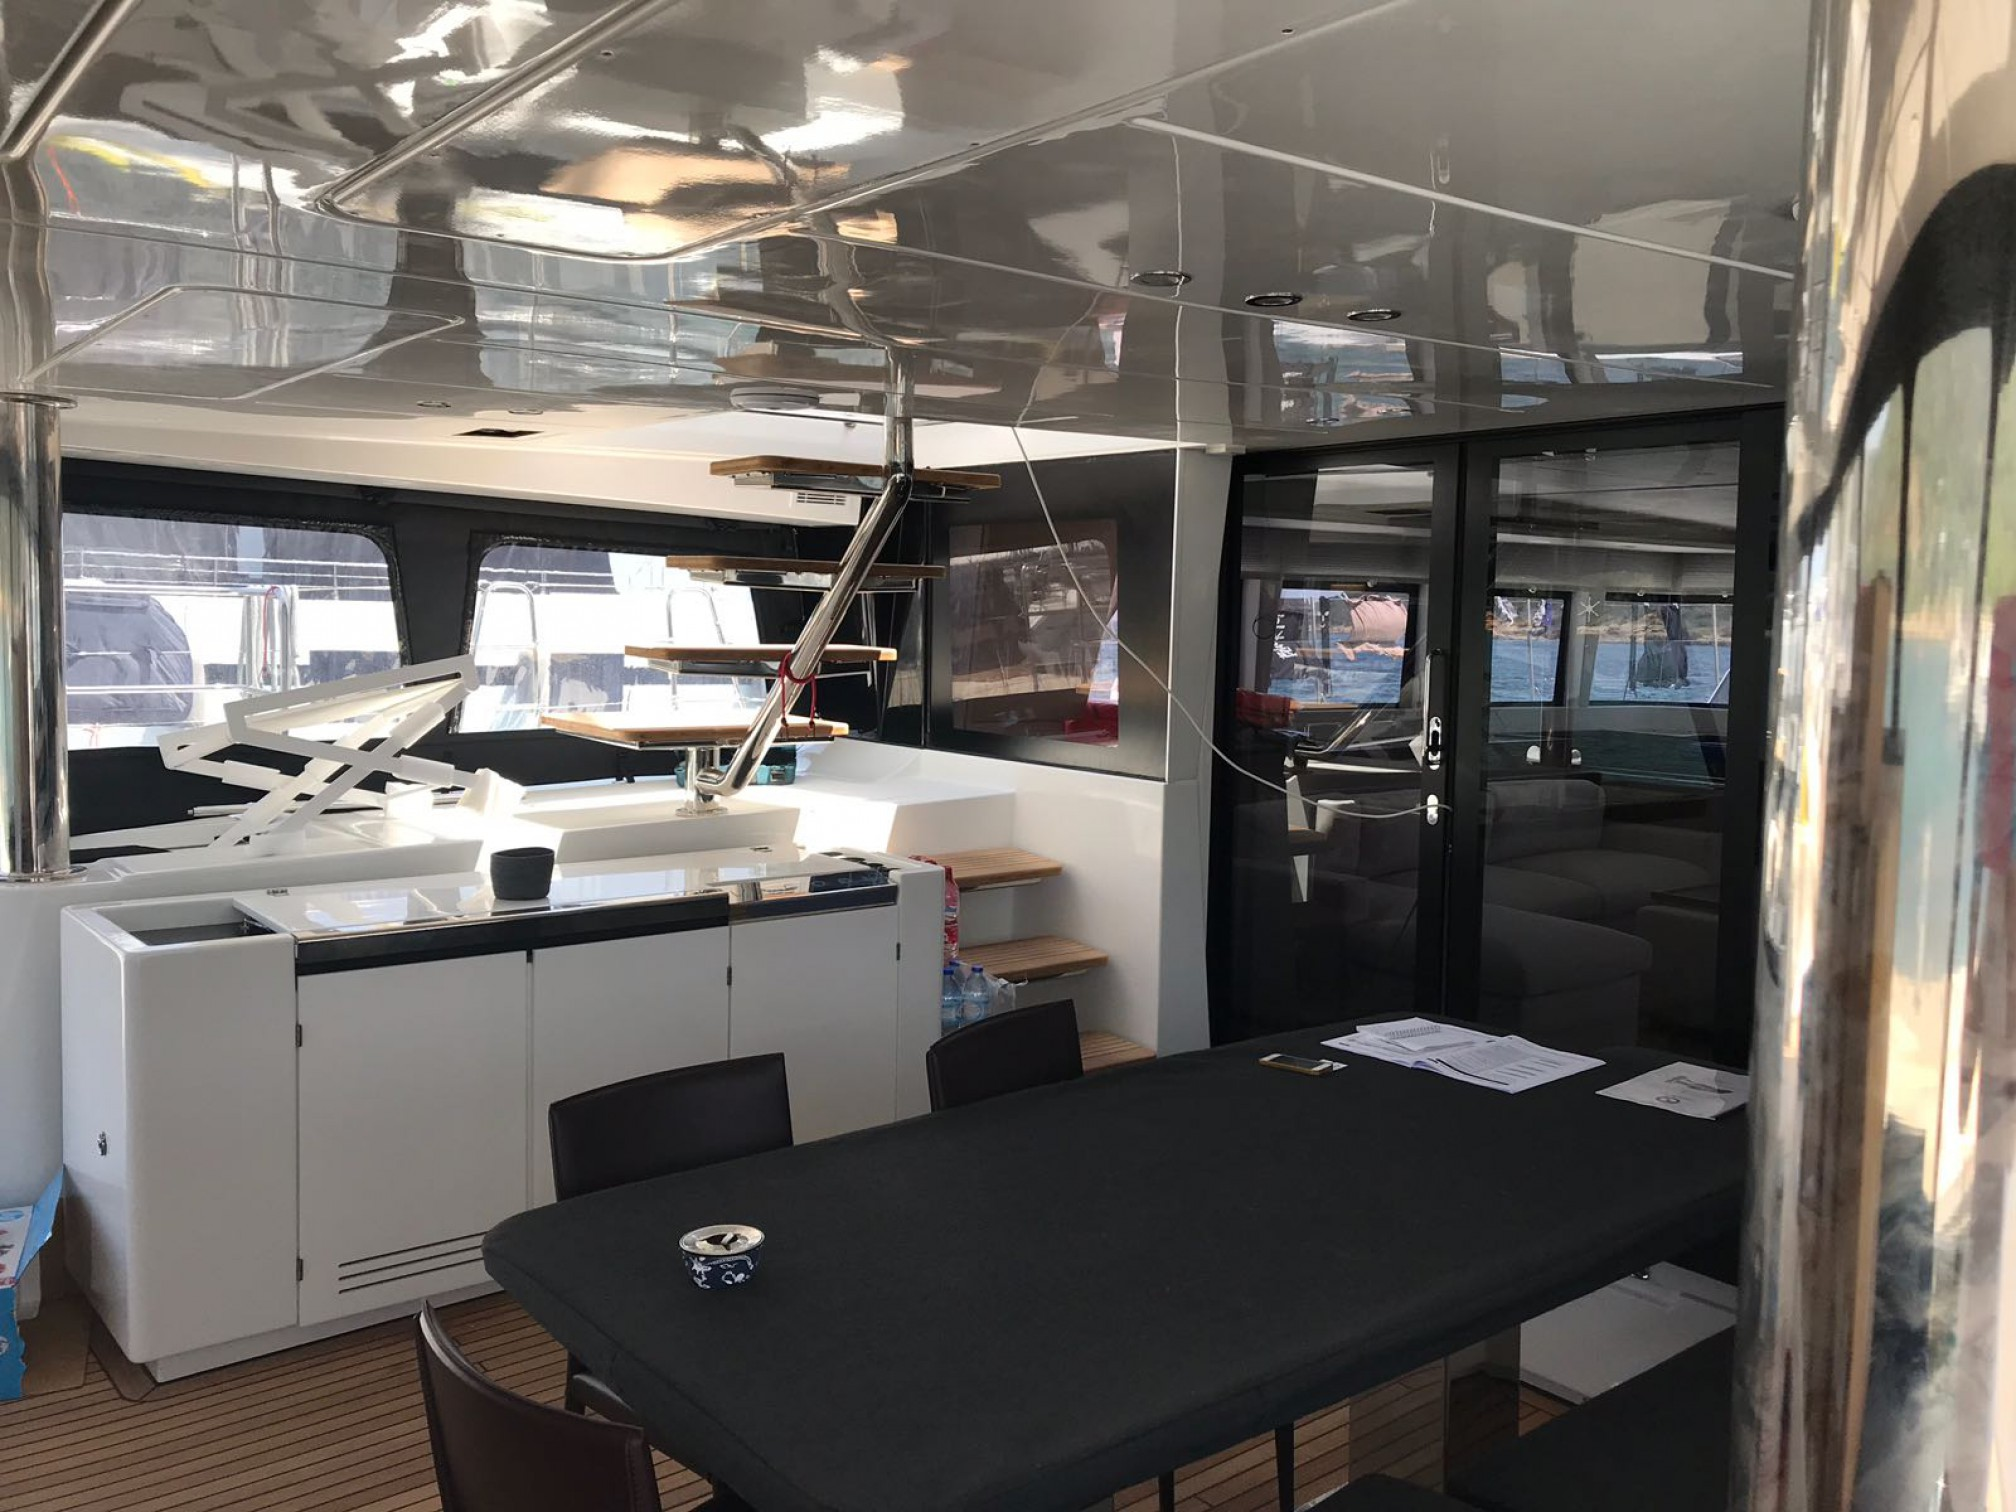 Rental catamaran  outdoors